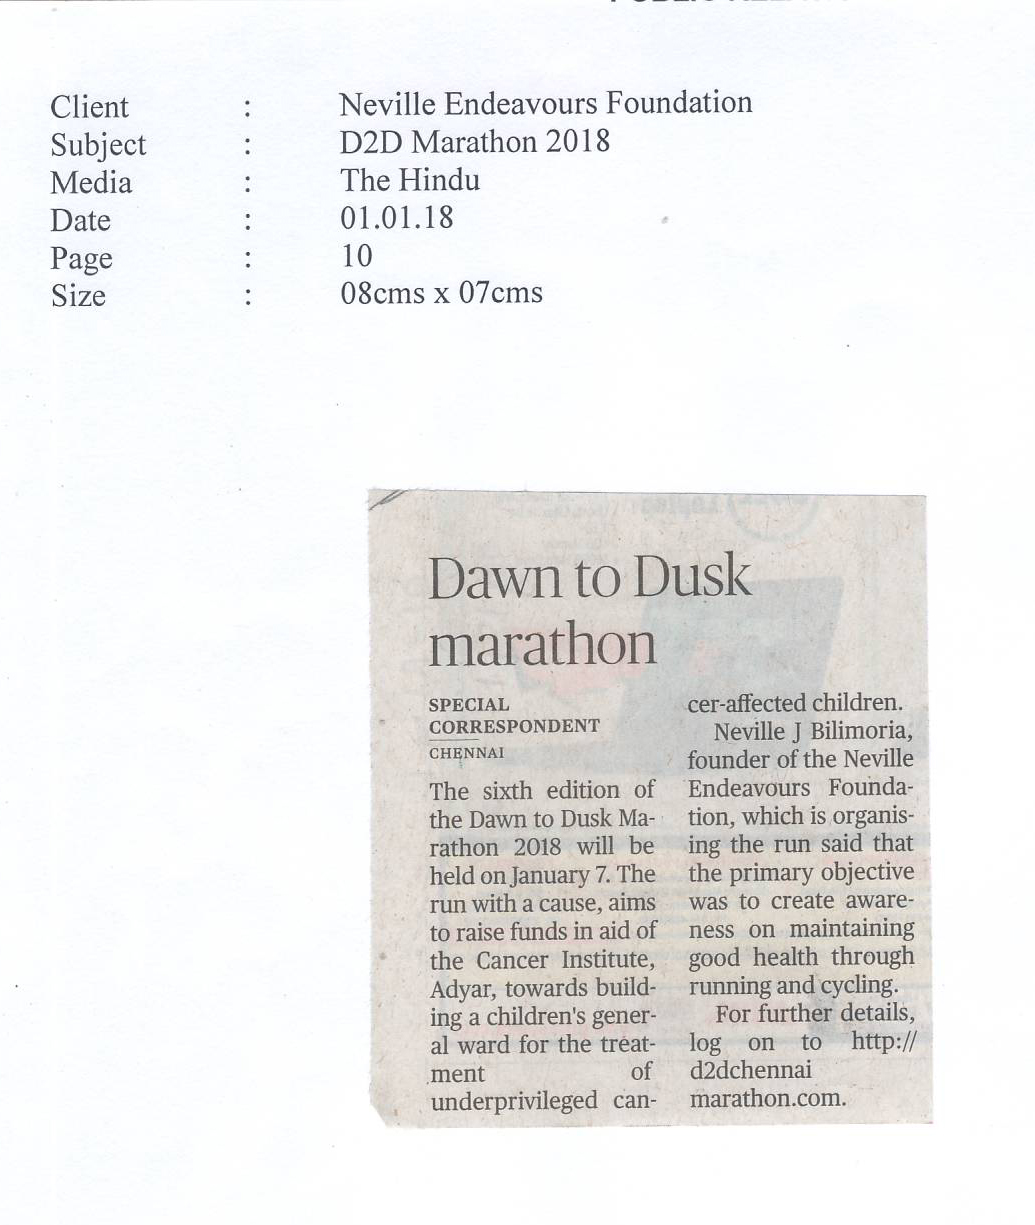 Dawn To Dusk 2018 – The Hindu – 01.01.18